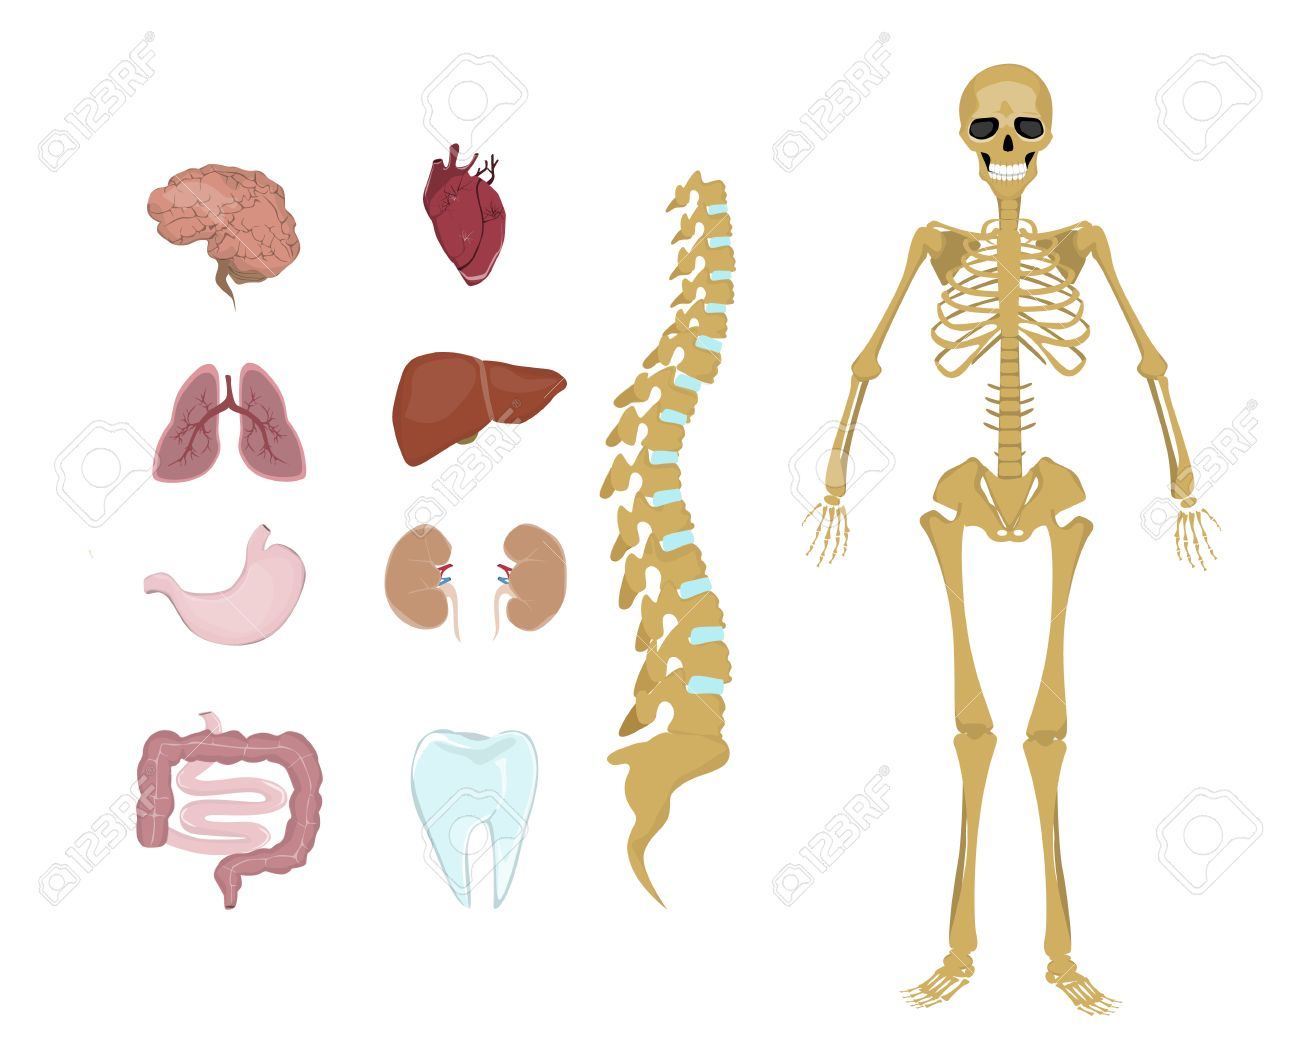 Whole Human Anatomy All Human Body Systems As Skeleton Organs